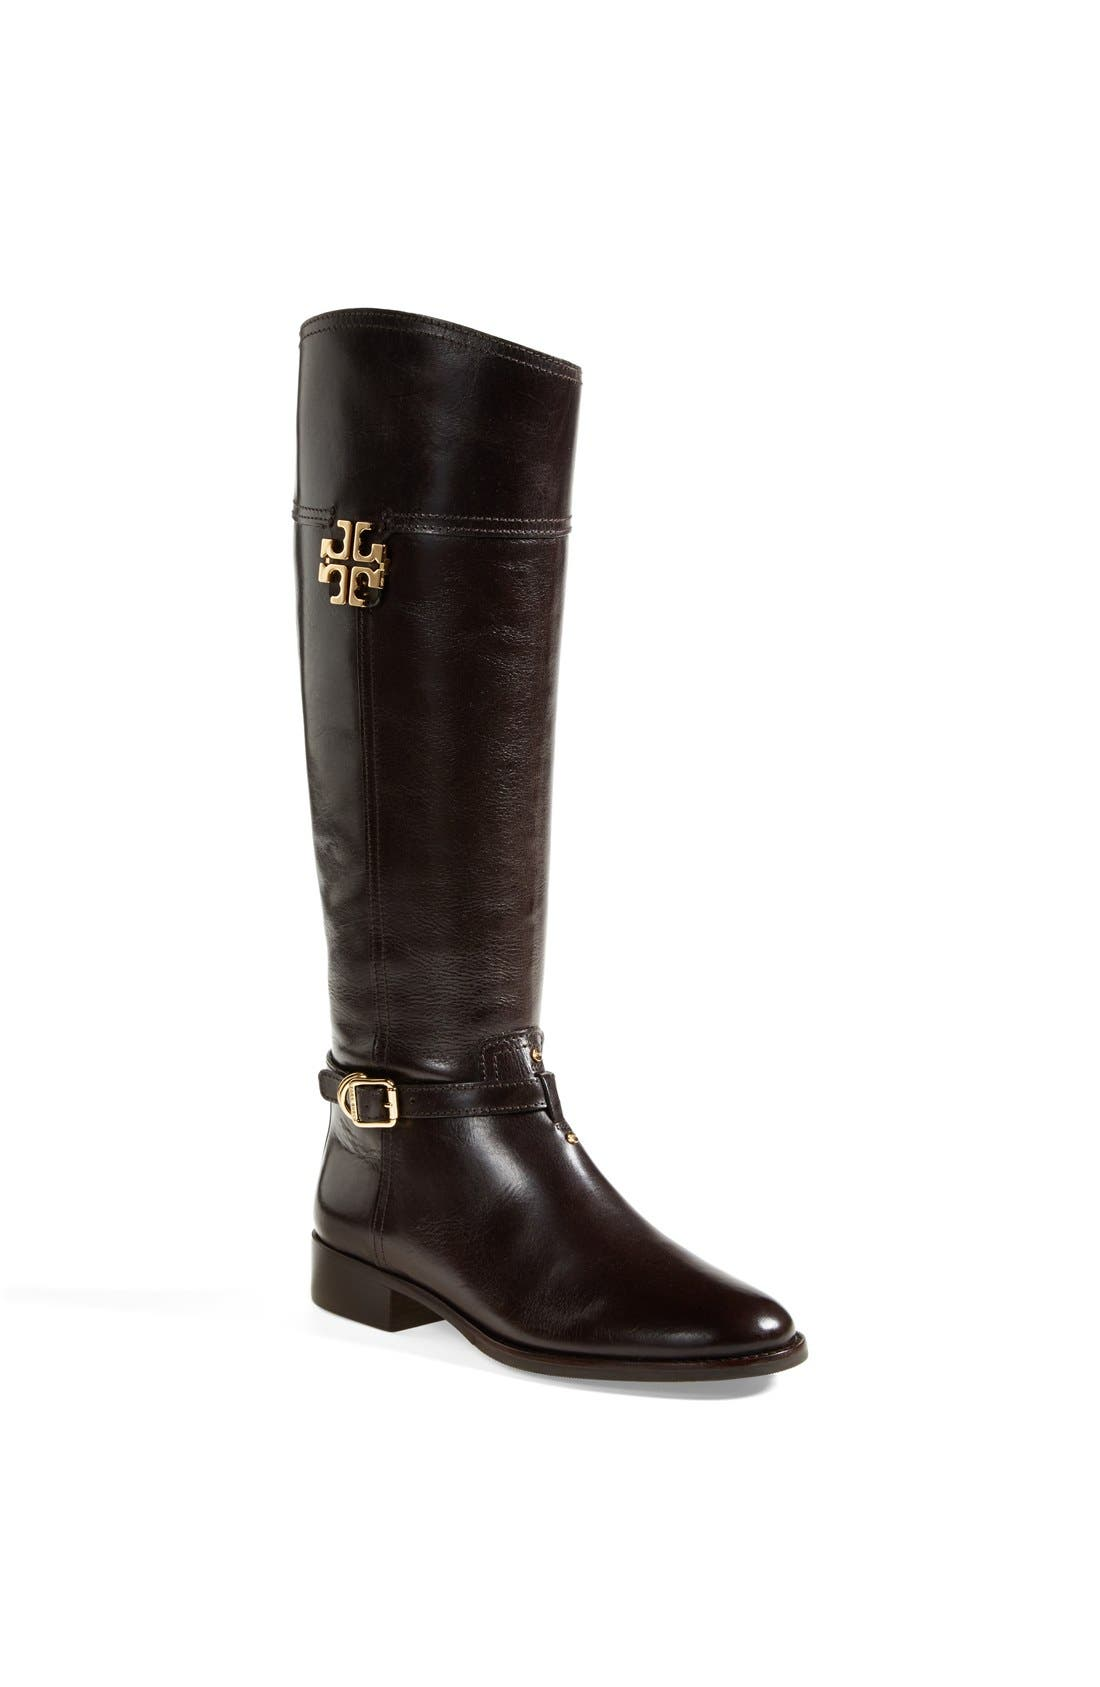 Main Image - Tory Burch 'Eloise' Riding Boot